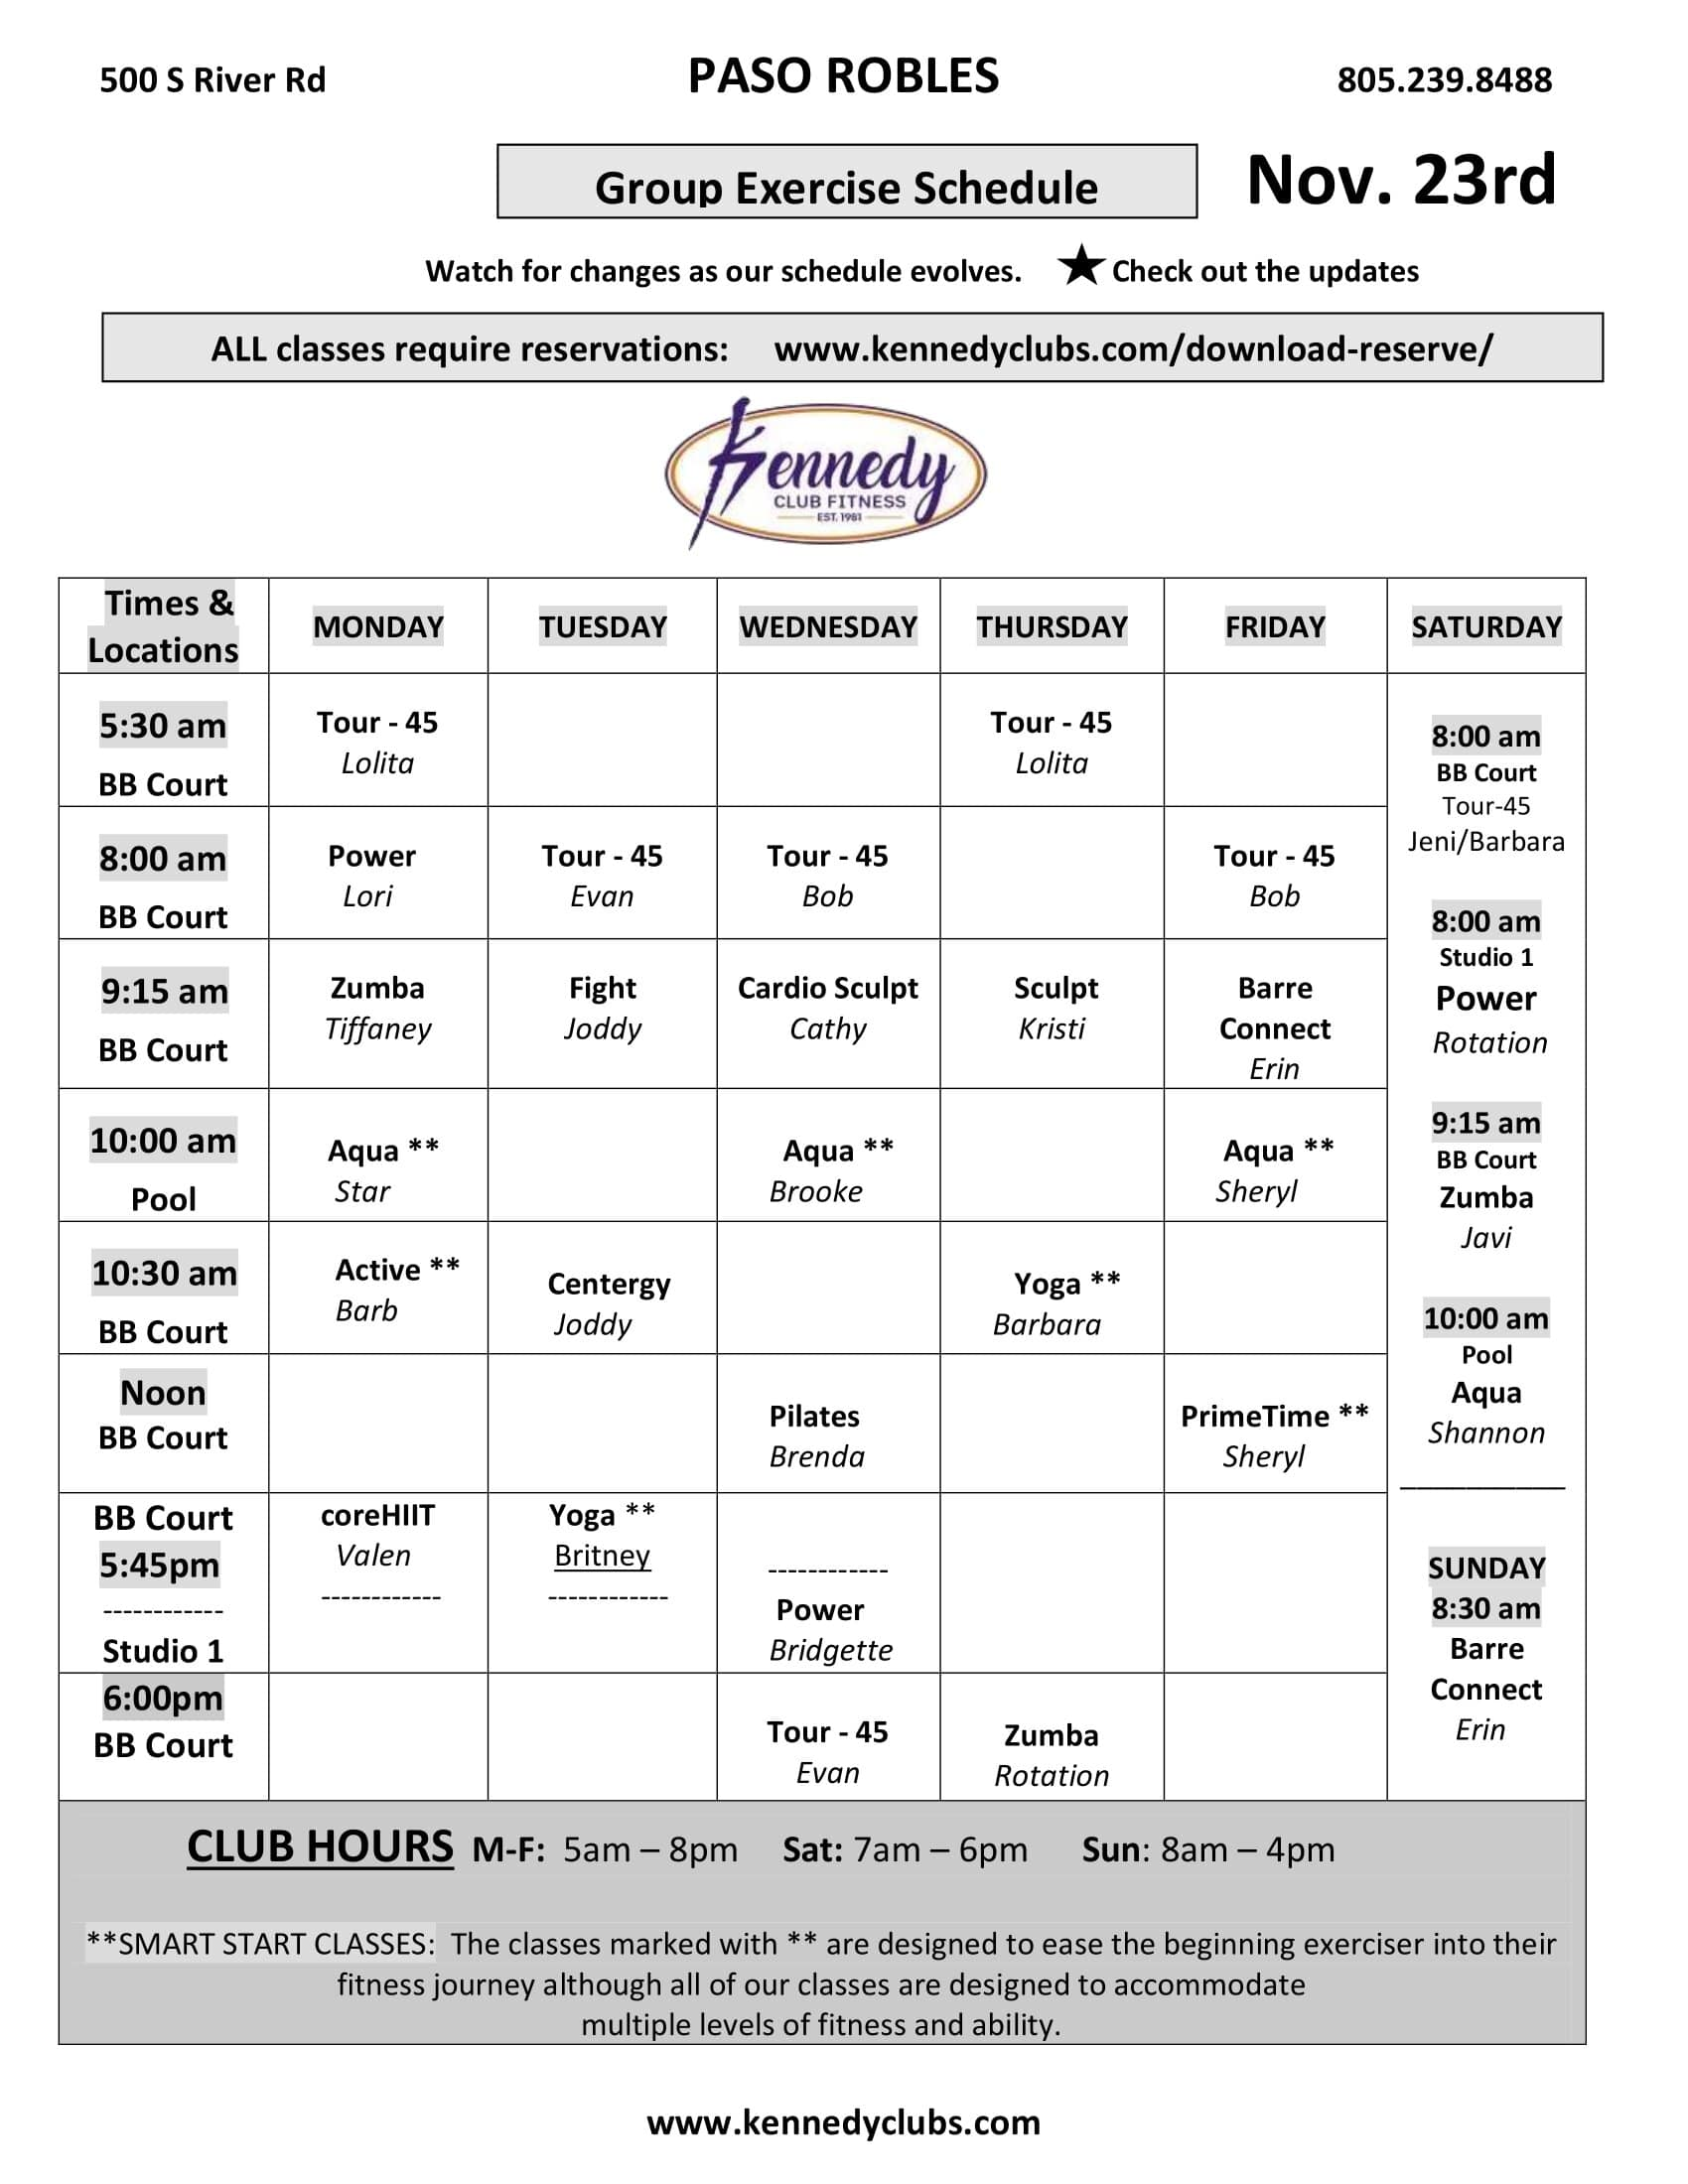 Kennedy Club Fitness Paso Robles Group Exercise Schedule 11 23 2020